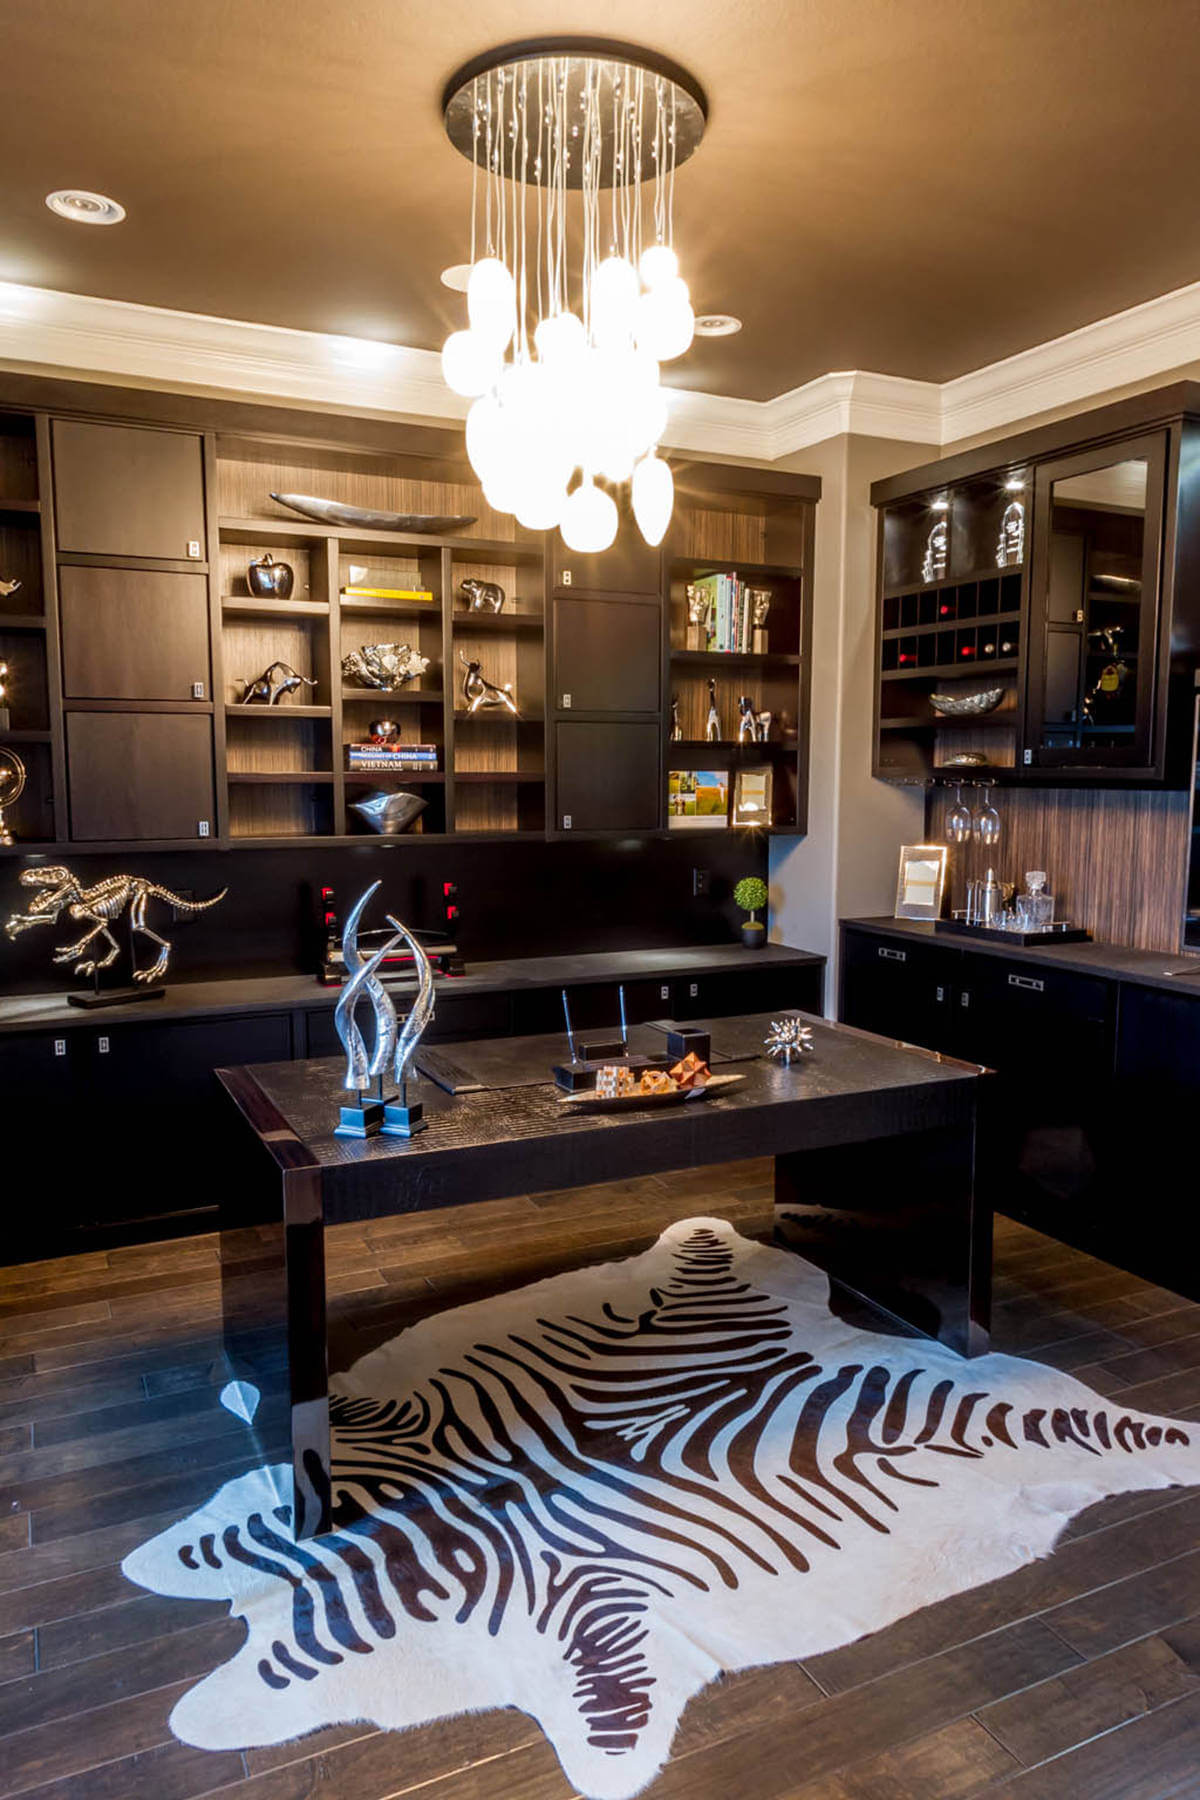 I love home offices with extensive custom cabinets for storage, display and workspace. This home office has that in spades. It's an insanely nice place to work with the dark cabinetry and desk and zebra print area rug